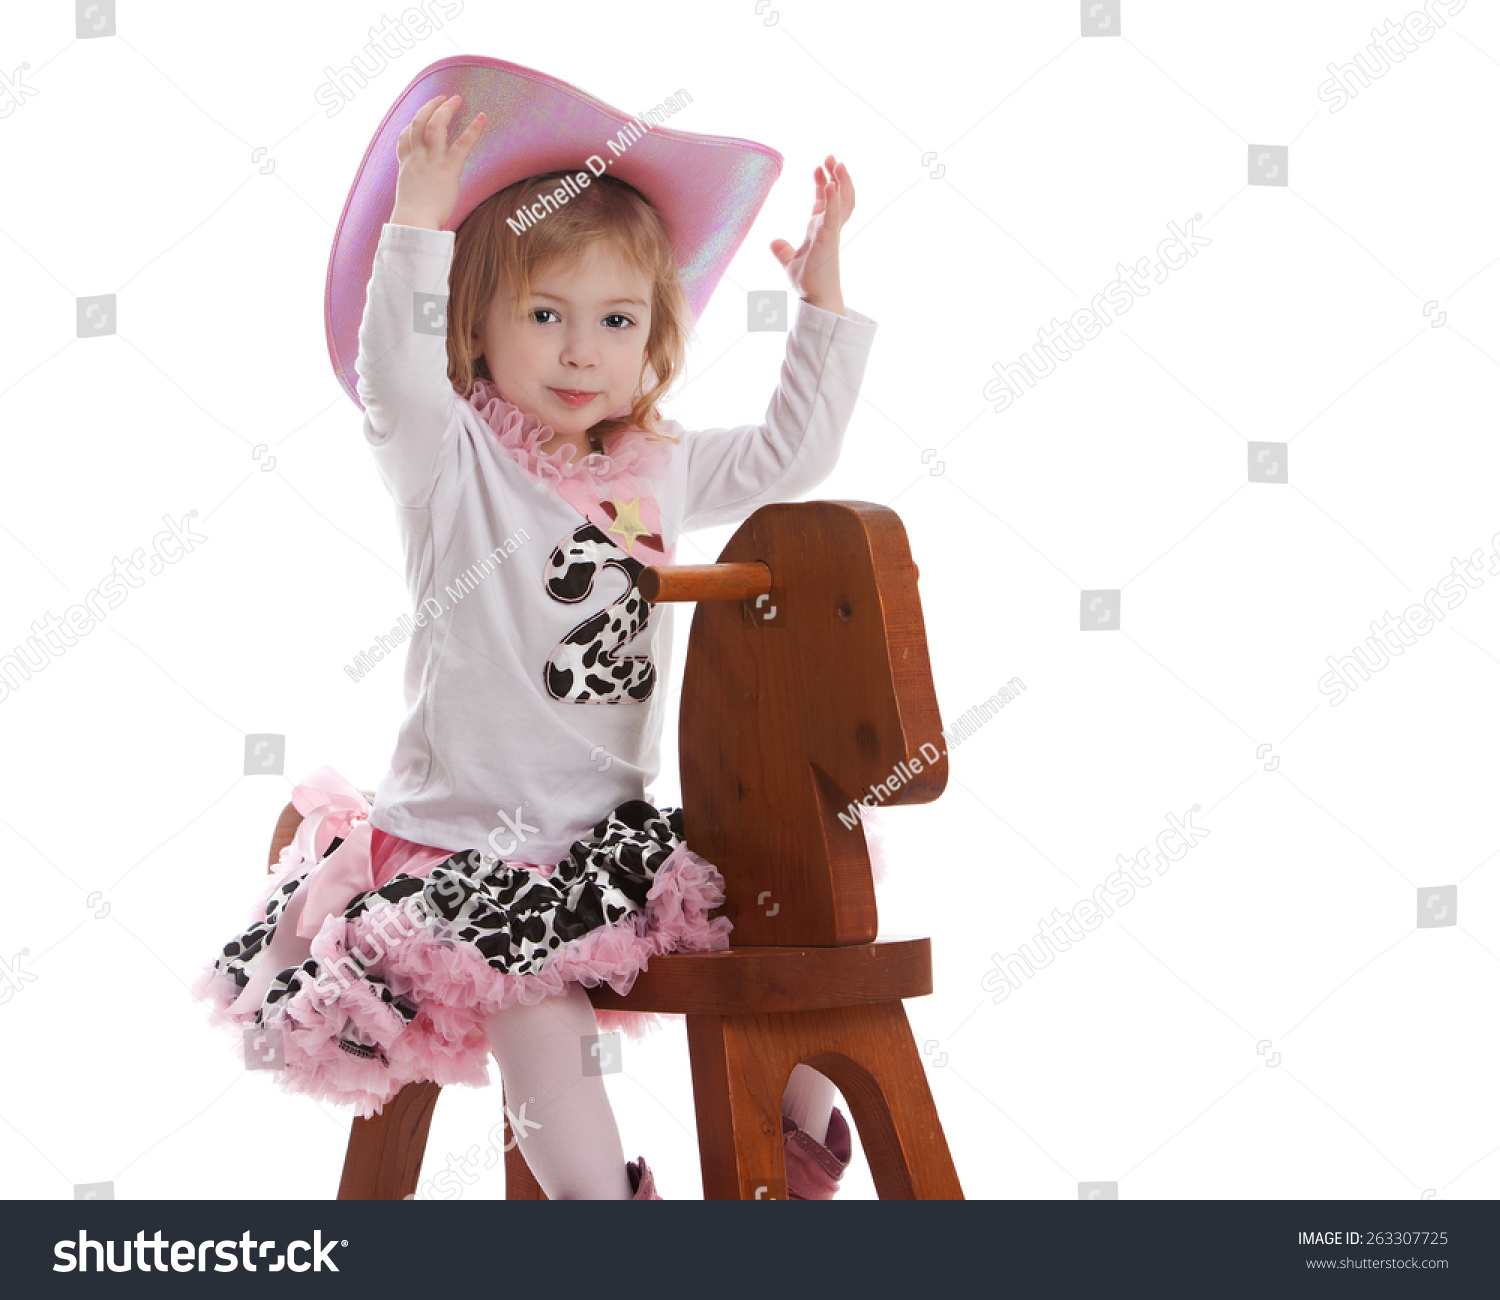 d07fbd129 Adorable Toddler Dressed Little Cowgirl Playing Stock Photo (Edit ...